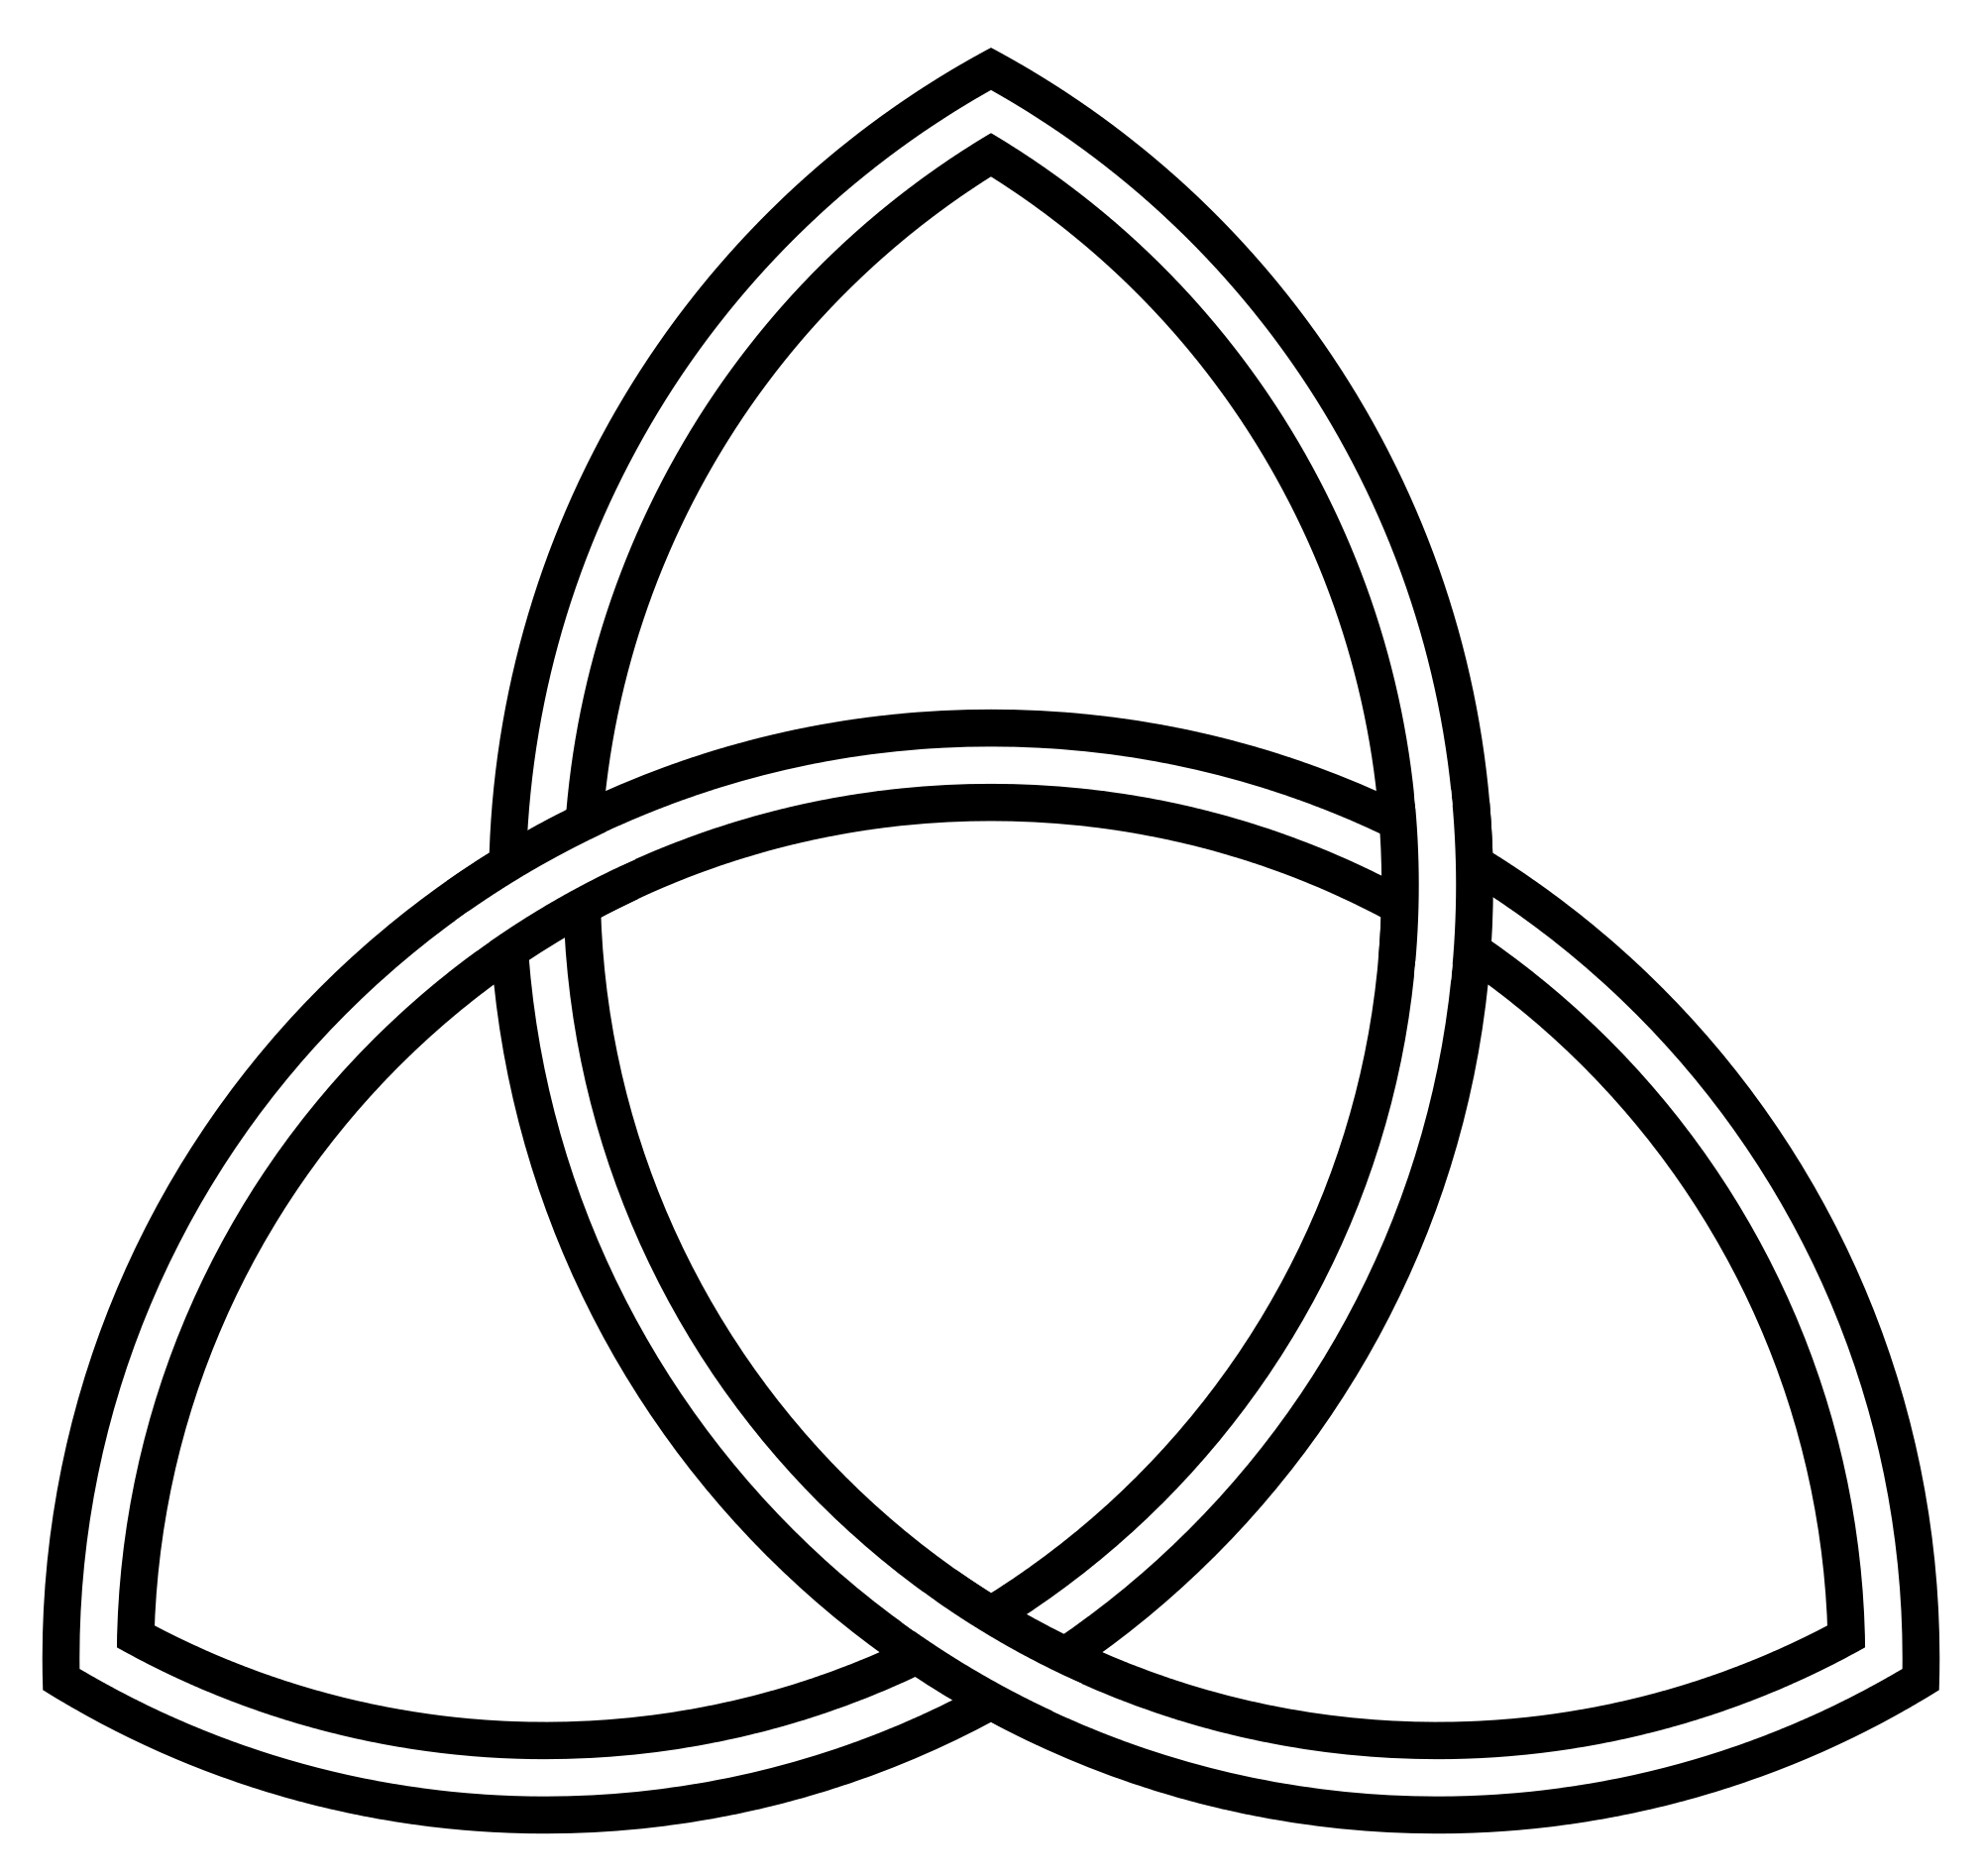 Thor svg symbol. I would like to